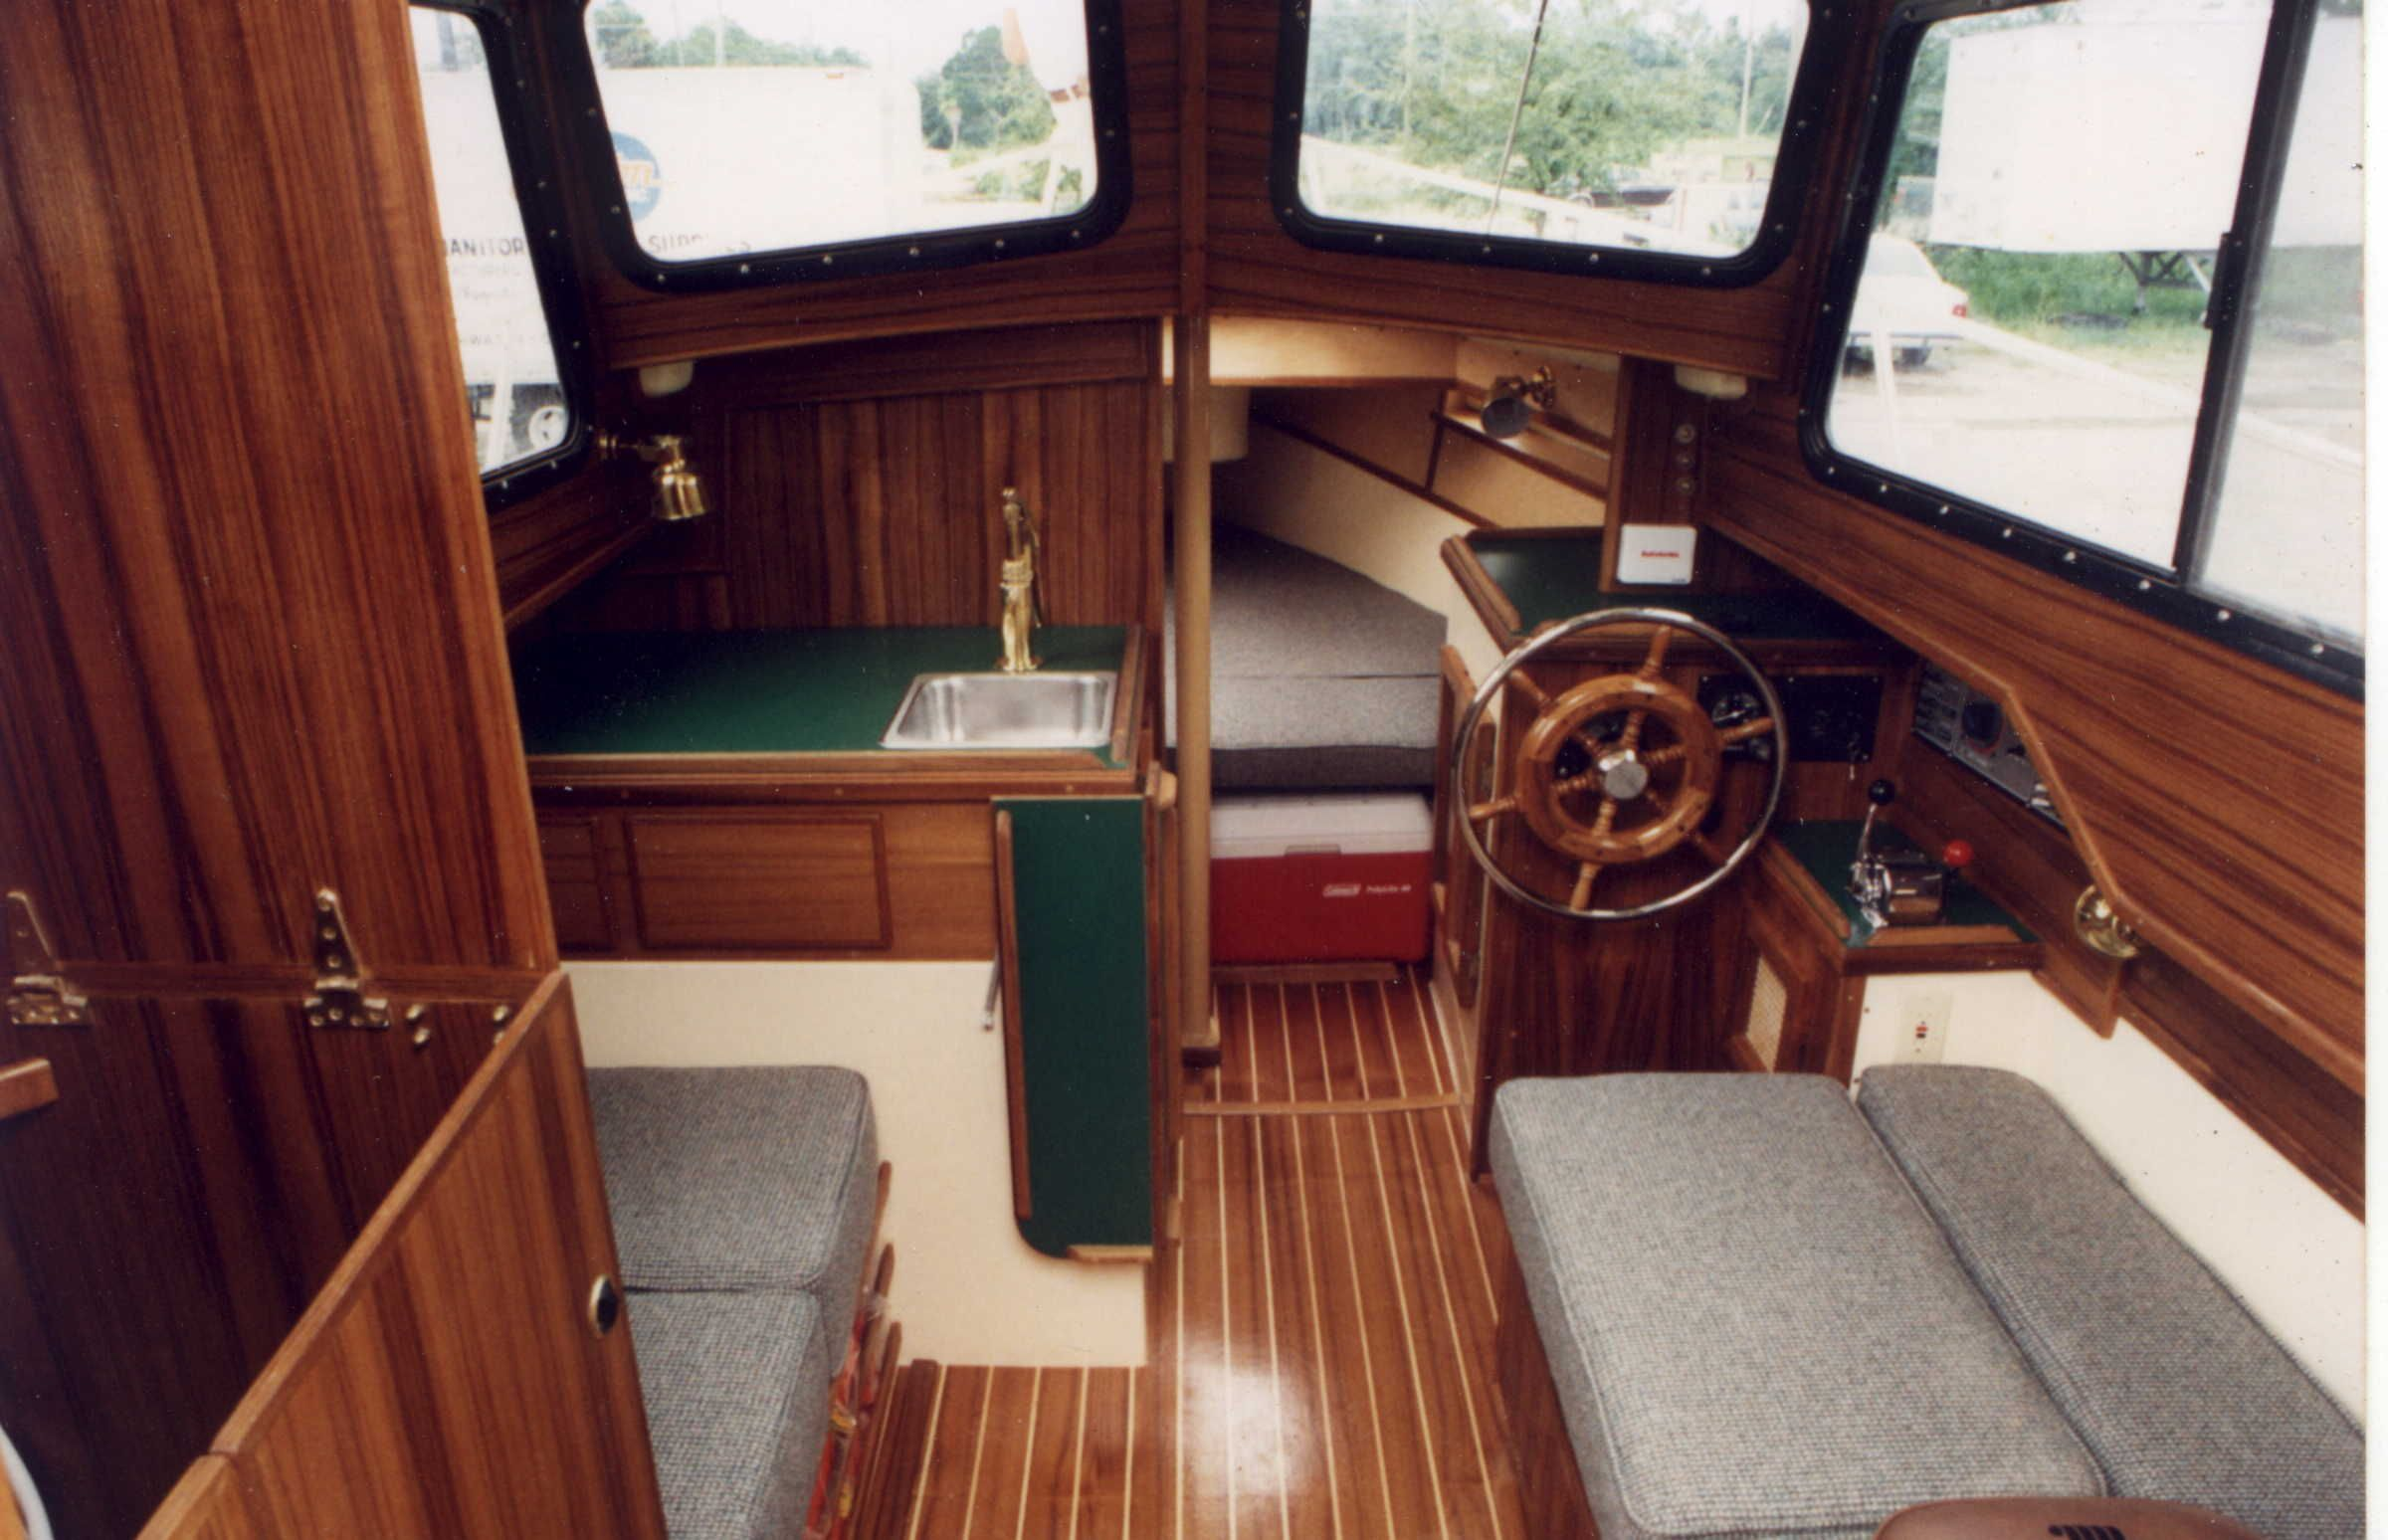 c dory 25 - with amazing cabin! | Gorgeous Boats | Cabin cruiser, Boat, Motor boats